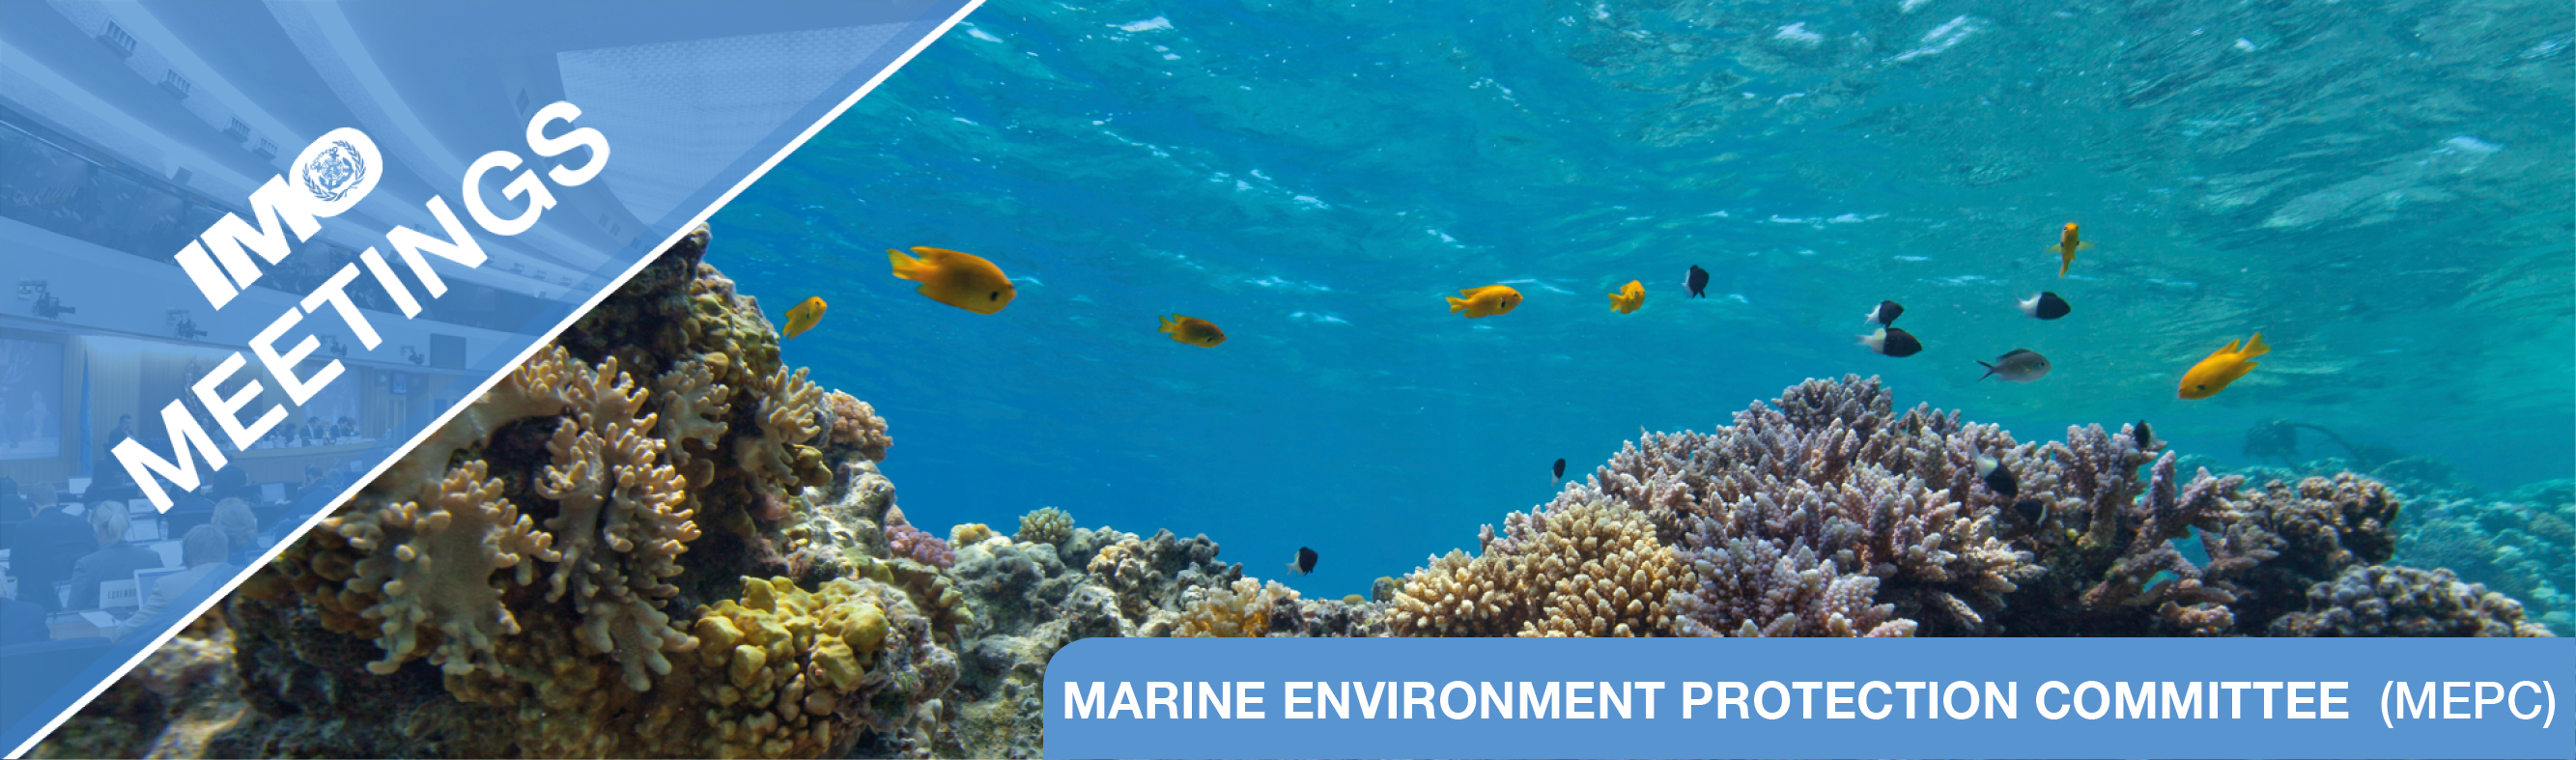 Preview: Marine Environment Protection Committee (MEPC), 74th session, 13-17 May 2019